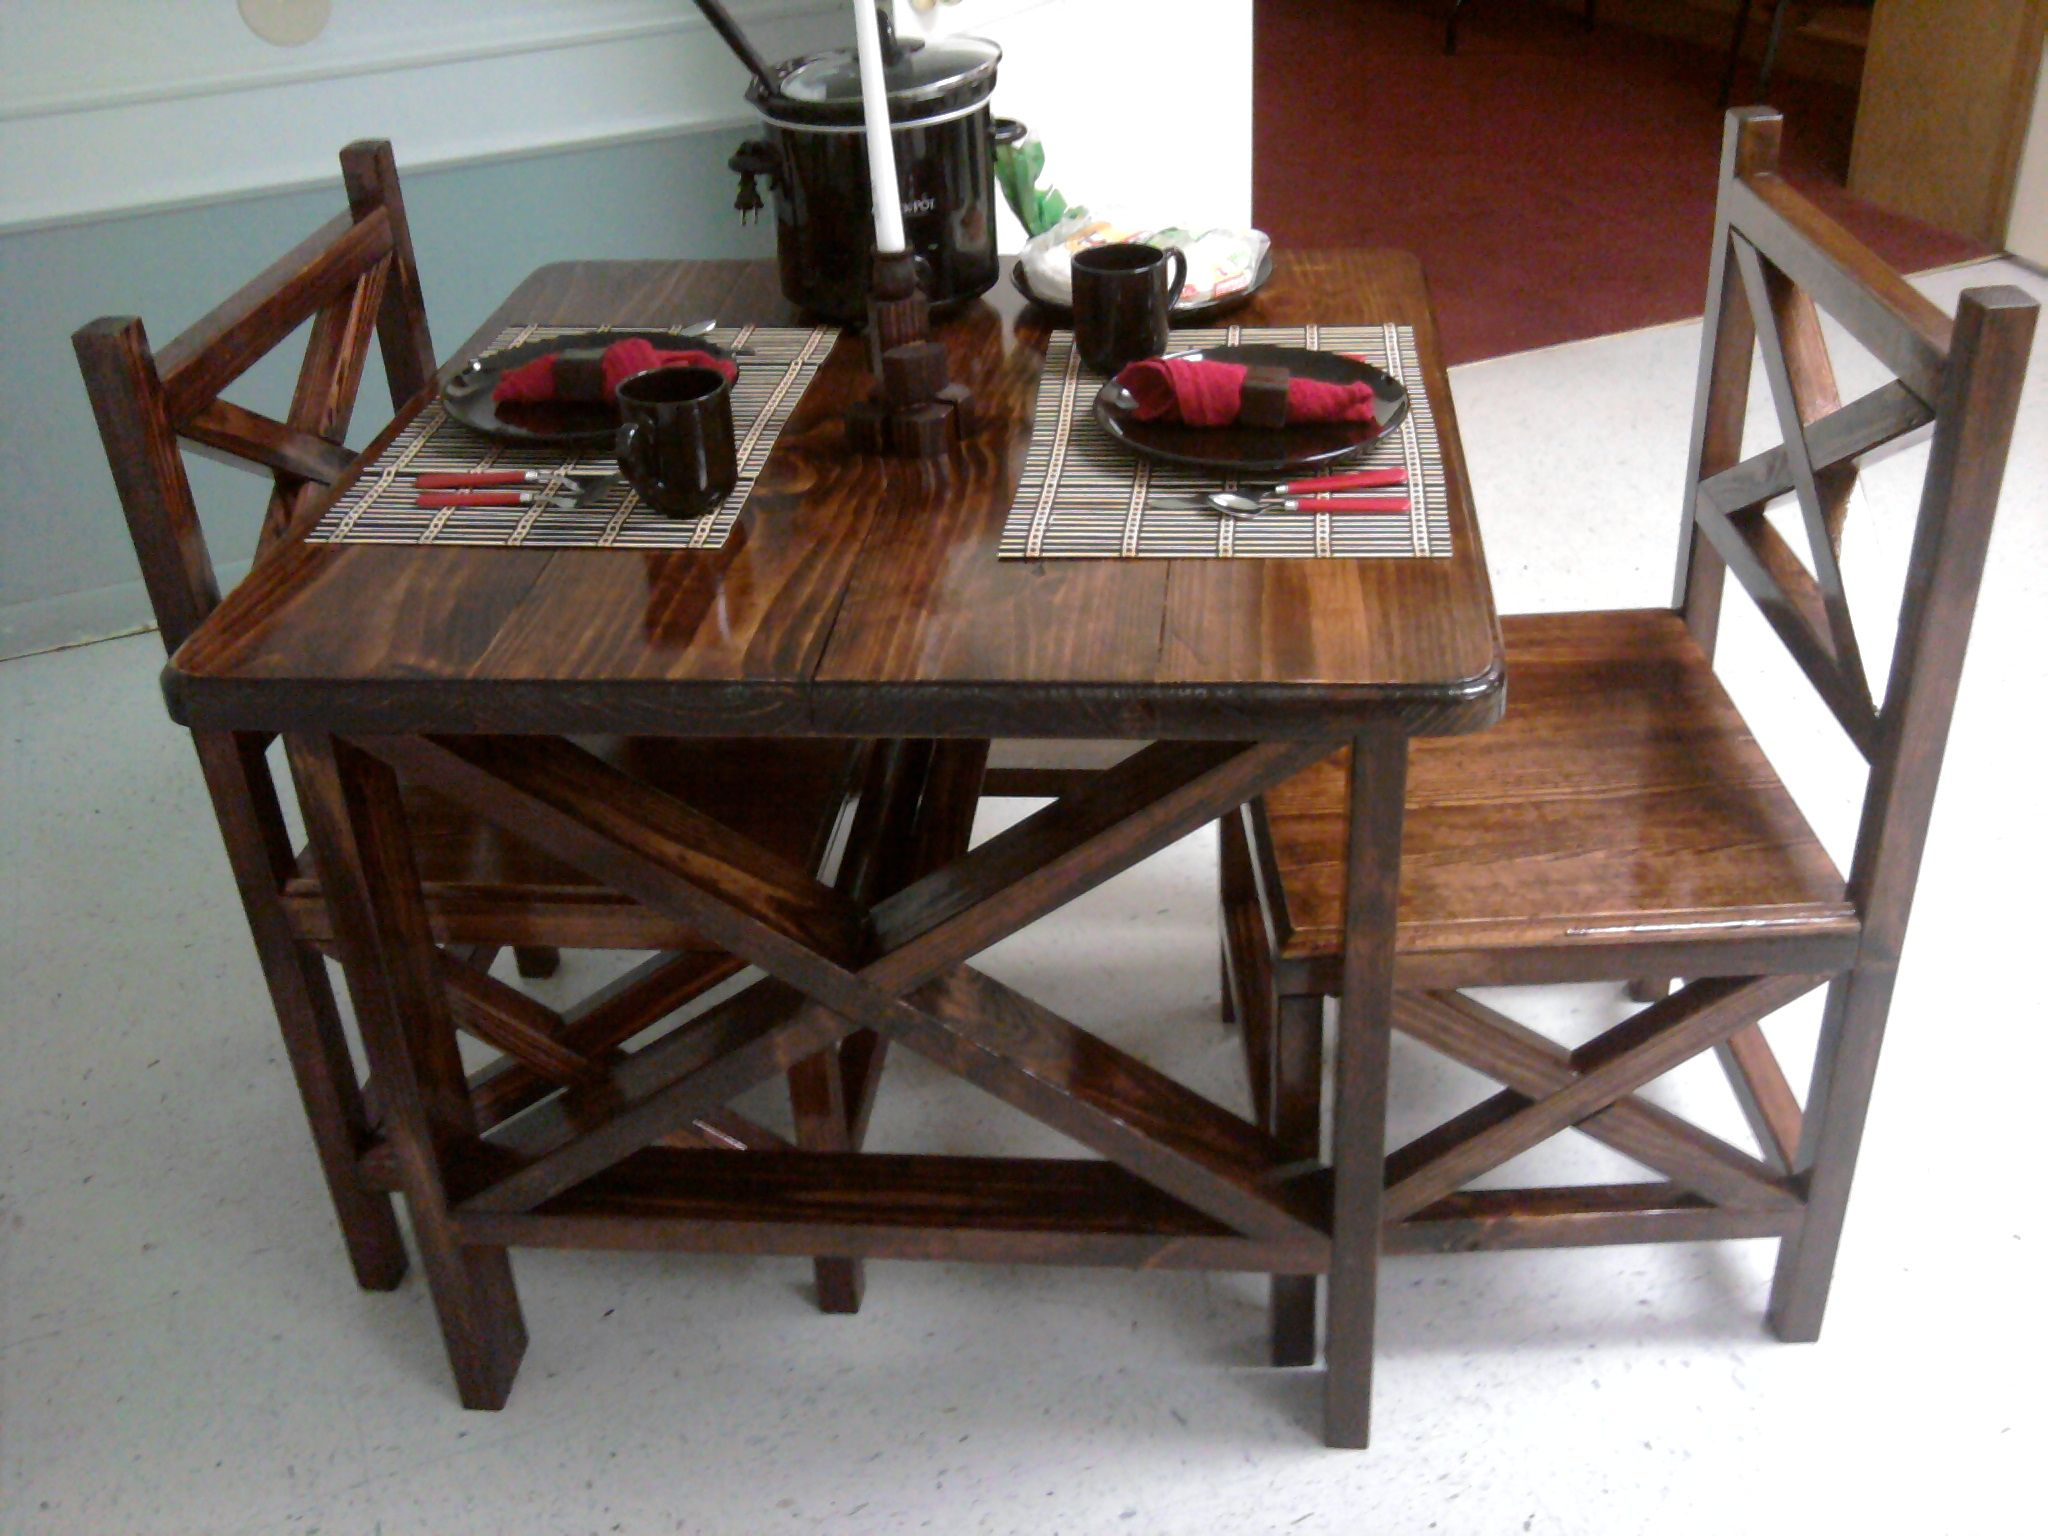 Superb Rustic X Table And Chairs Do It Yourself Home Projects Alphanode Cool Chair Designs And Ideas Alphanodeonline